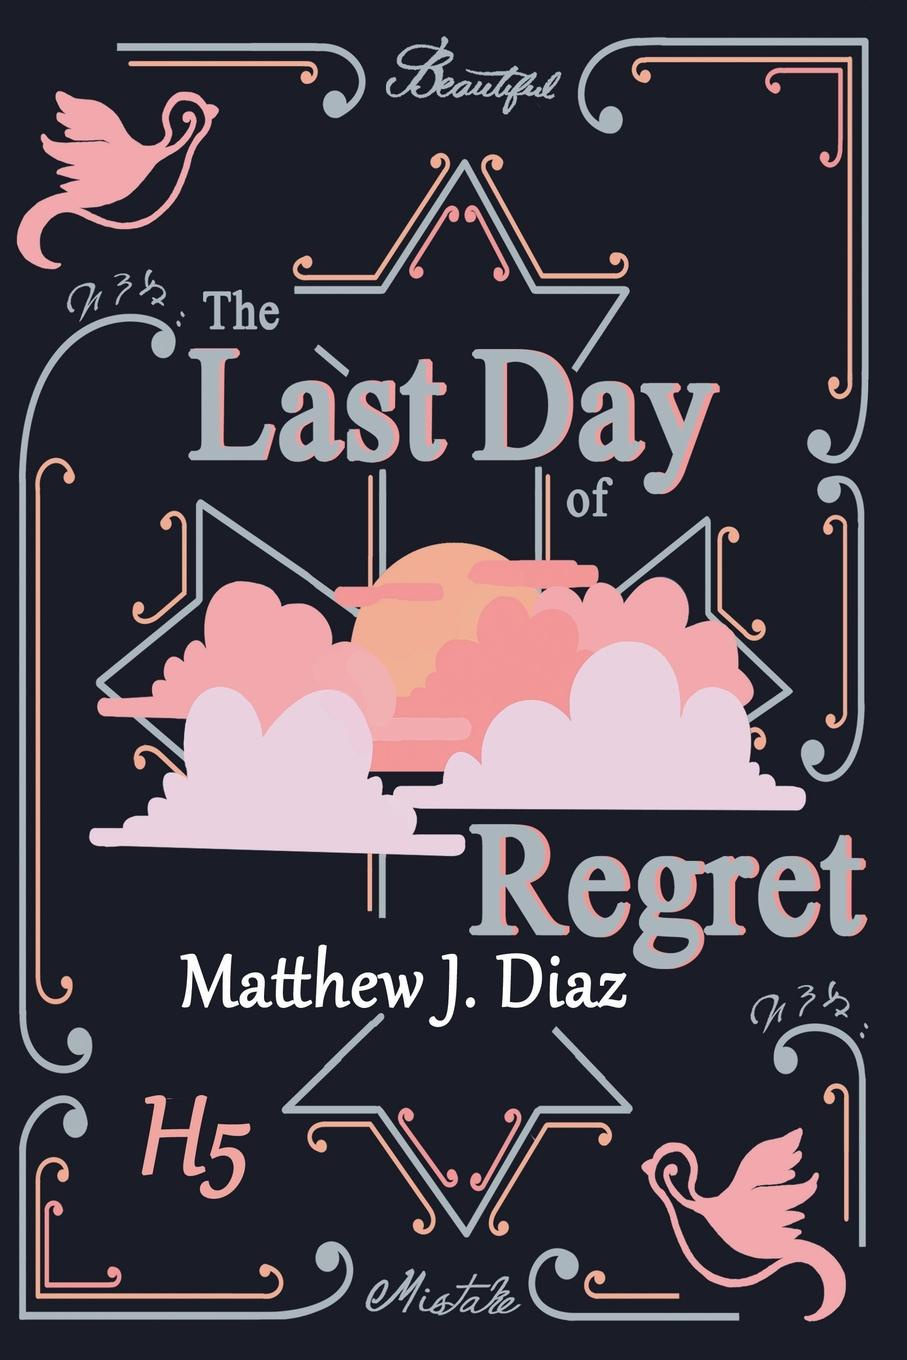 Matthew J. Diaz The Last Day of Regret me and my army me and my army thank god for sending demons